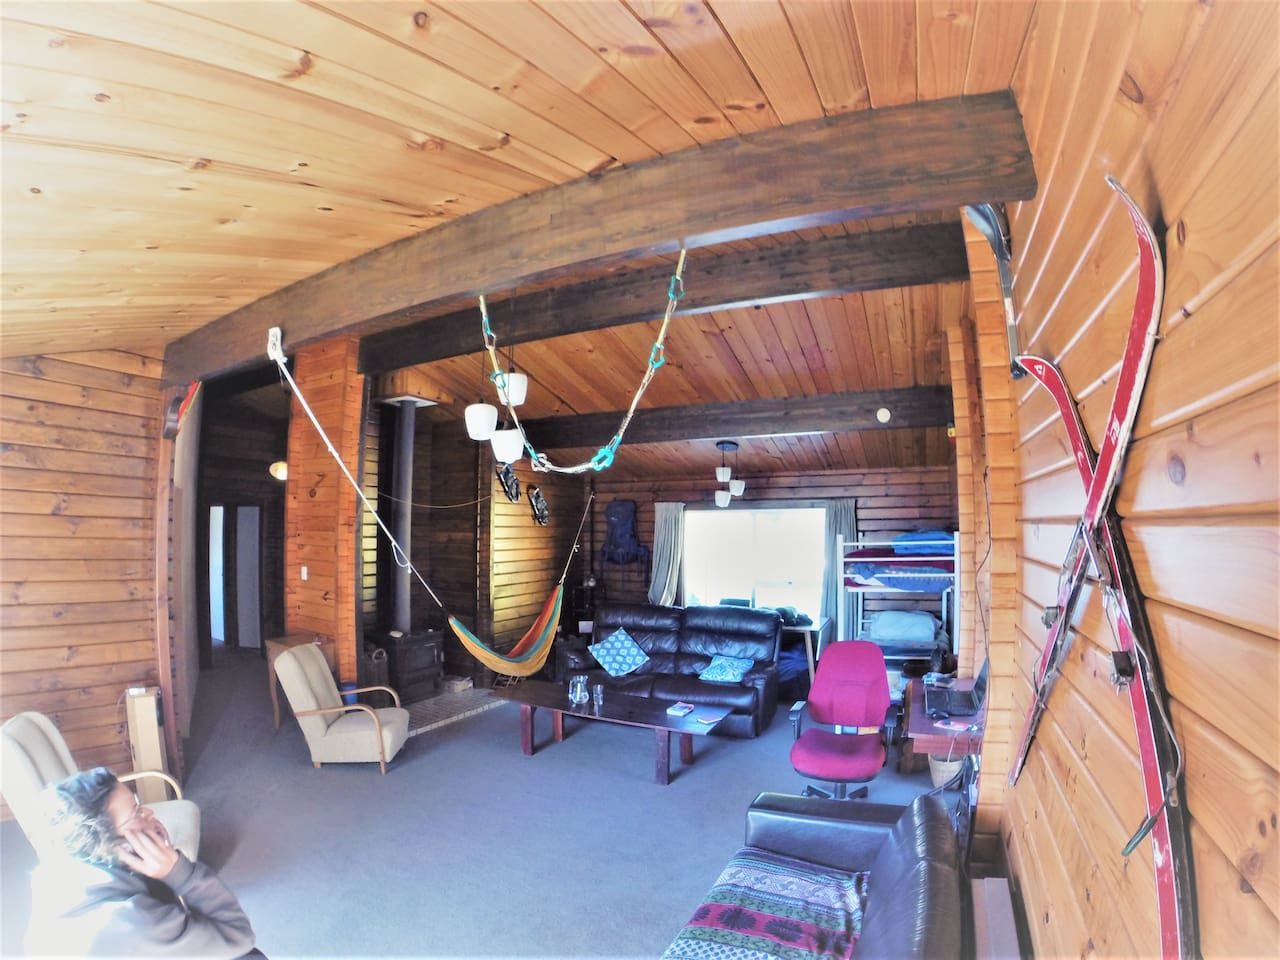 The common/living area in our home has a few special features like a hammock, a wholesome audio system, guest bunk beds and we even have hang points for testing paragliding harnesses (just in case) and a nice warm fire.